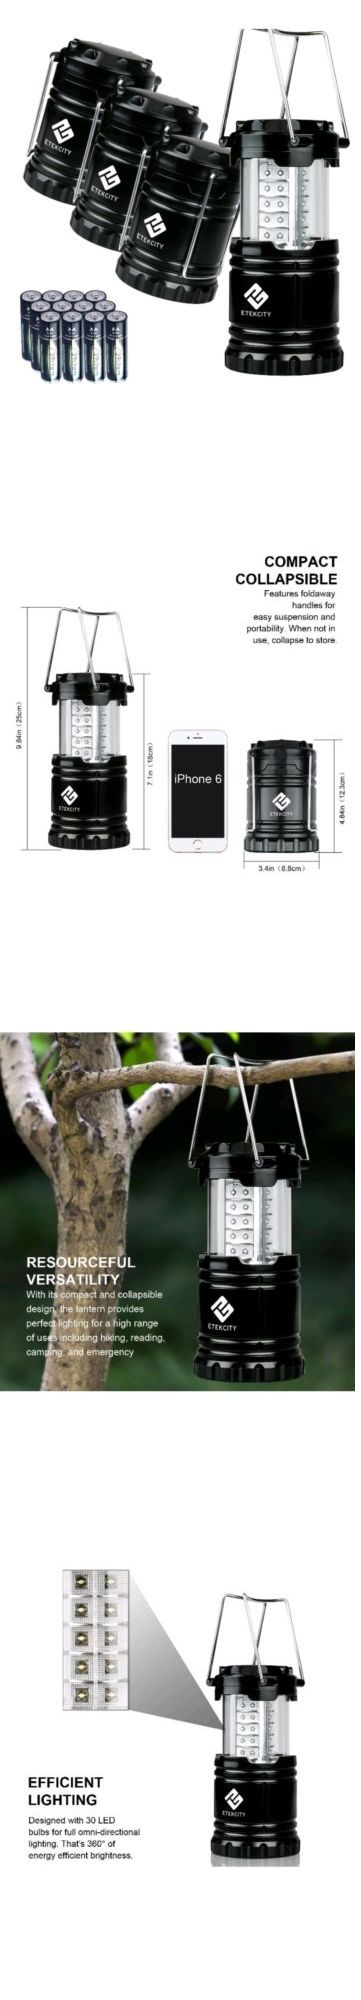 Other Camping Lighting 159092: Camping Lantern 4 Pk Etekcity Portable Led Lantern Batteries Included Outdoor -> BUY IT NOW ONLY: $46.99 on eBay!